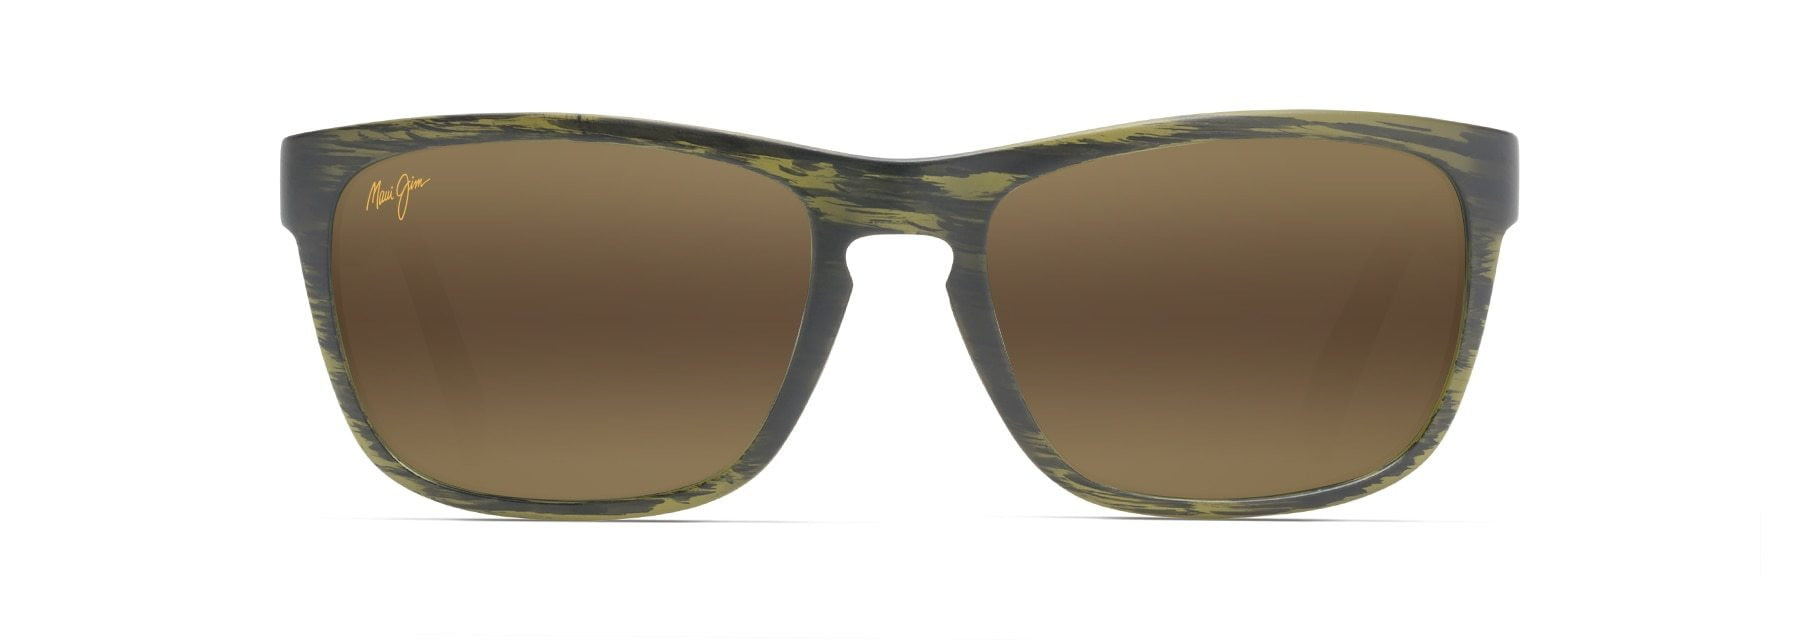 MyMaui South Swell MM755-024 Sunglasses